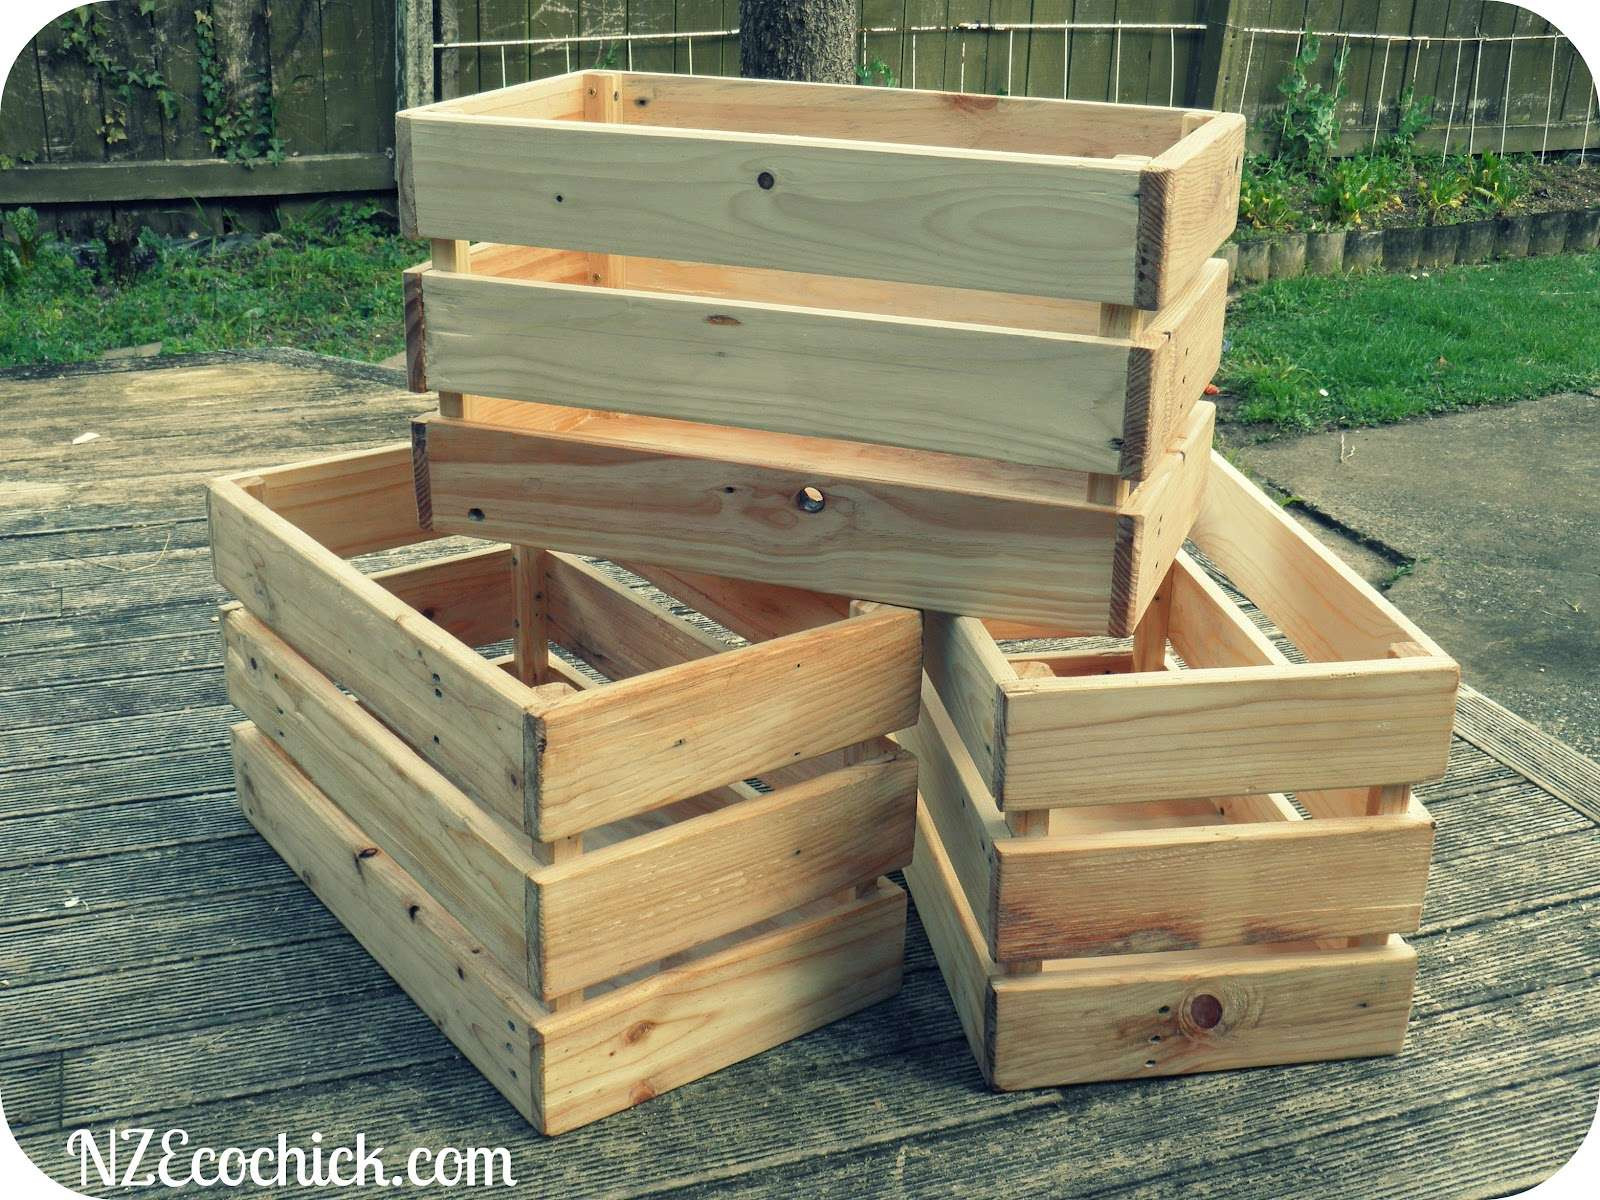 Best ideas about Pallet Boxes DIY . Save or Pin Pallet crates NZ Ecochick Now.